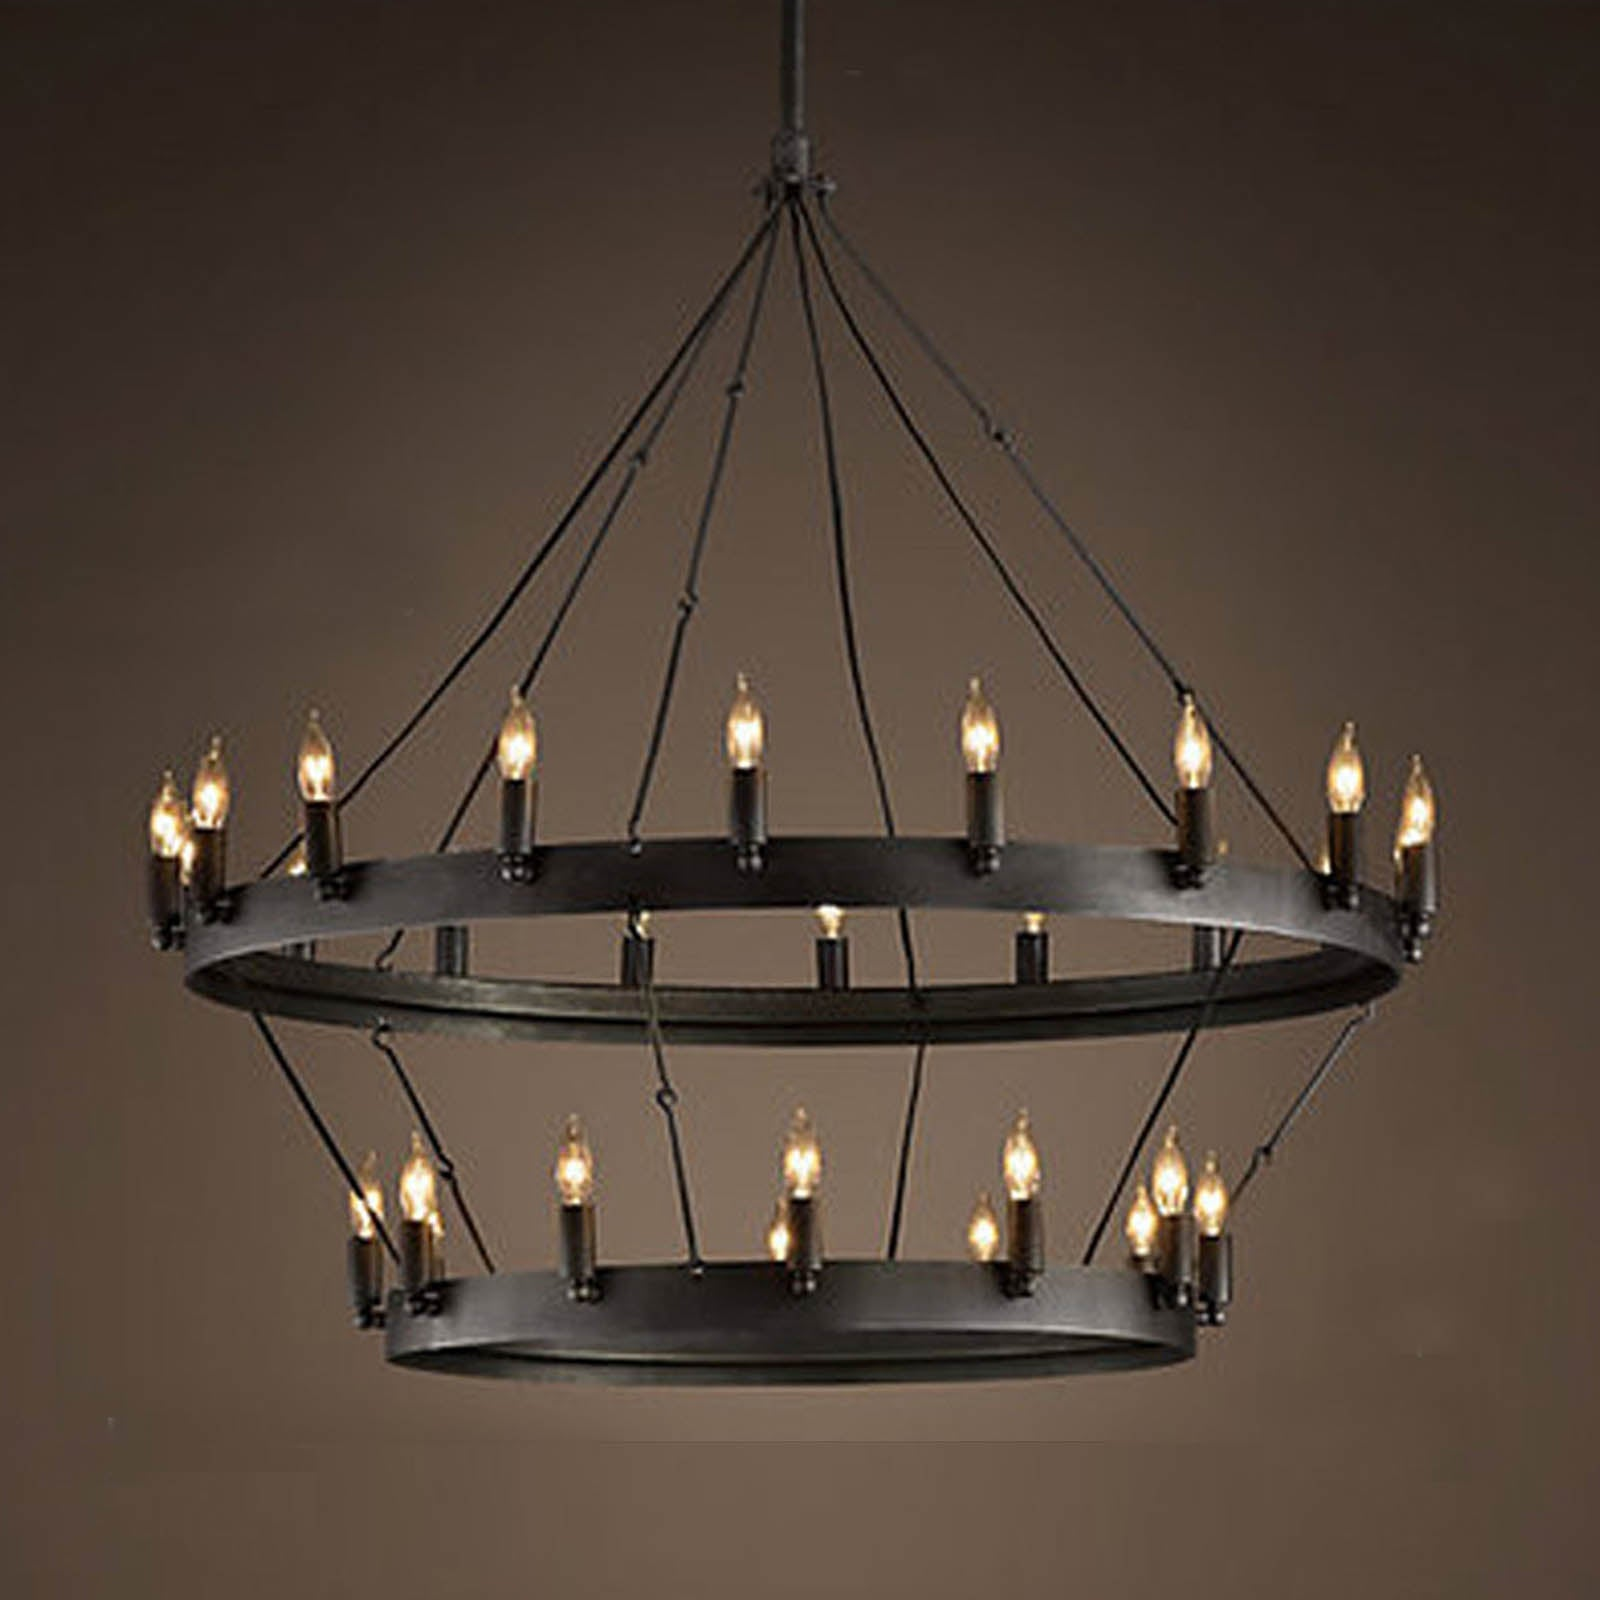 30 Heads  Vintage  Chandelier  CY-DD-079 -  ثريا عتيقة 30 رأس - Shop Online Furniture and Home Decor Store in Dubai, UAE at ebarza